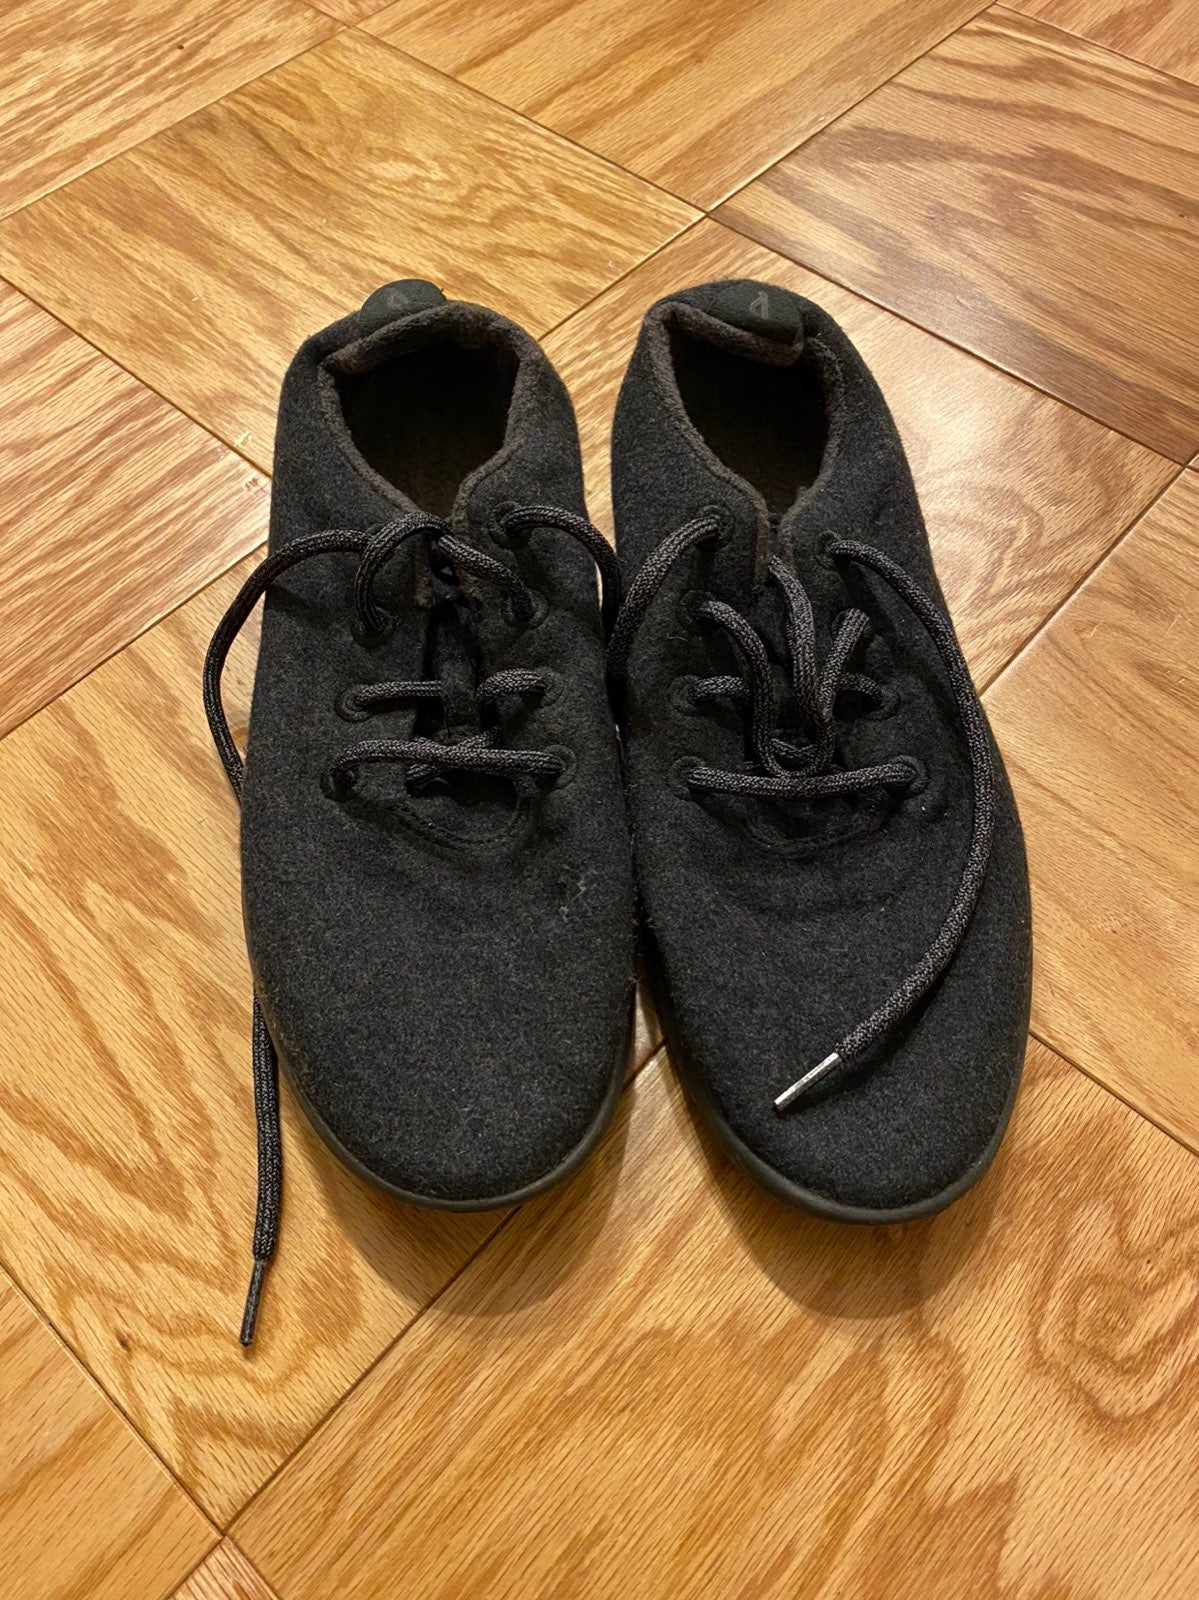 Allbirds mens size 10 shoes